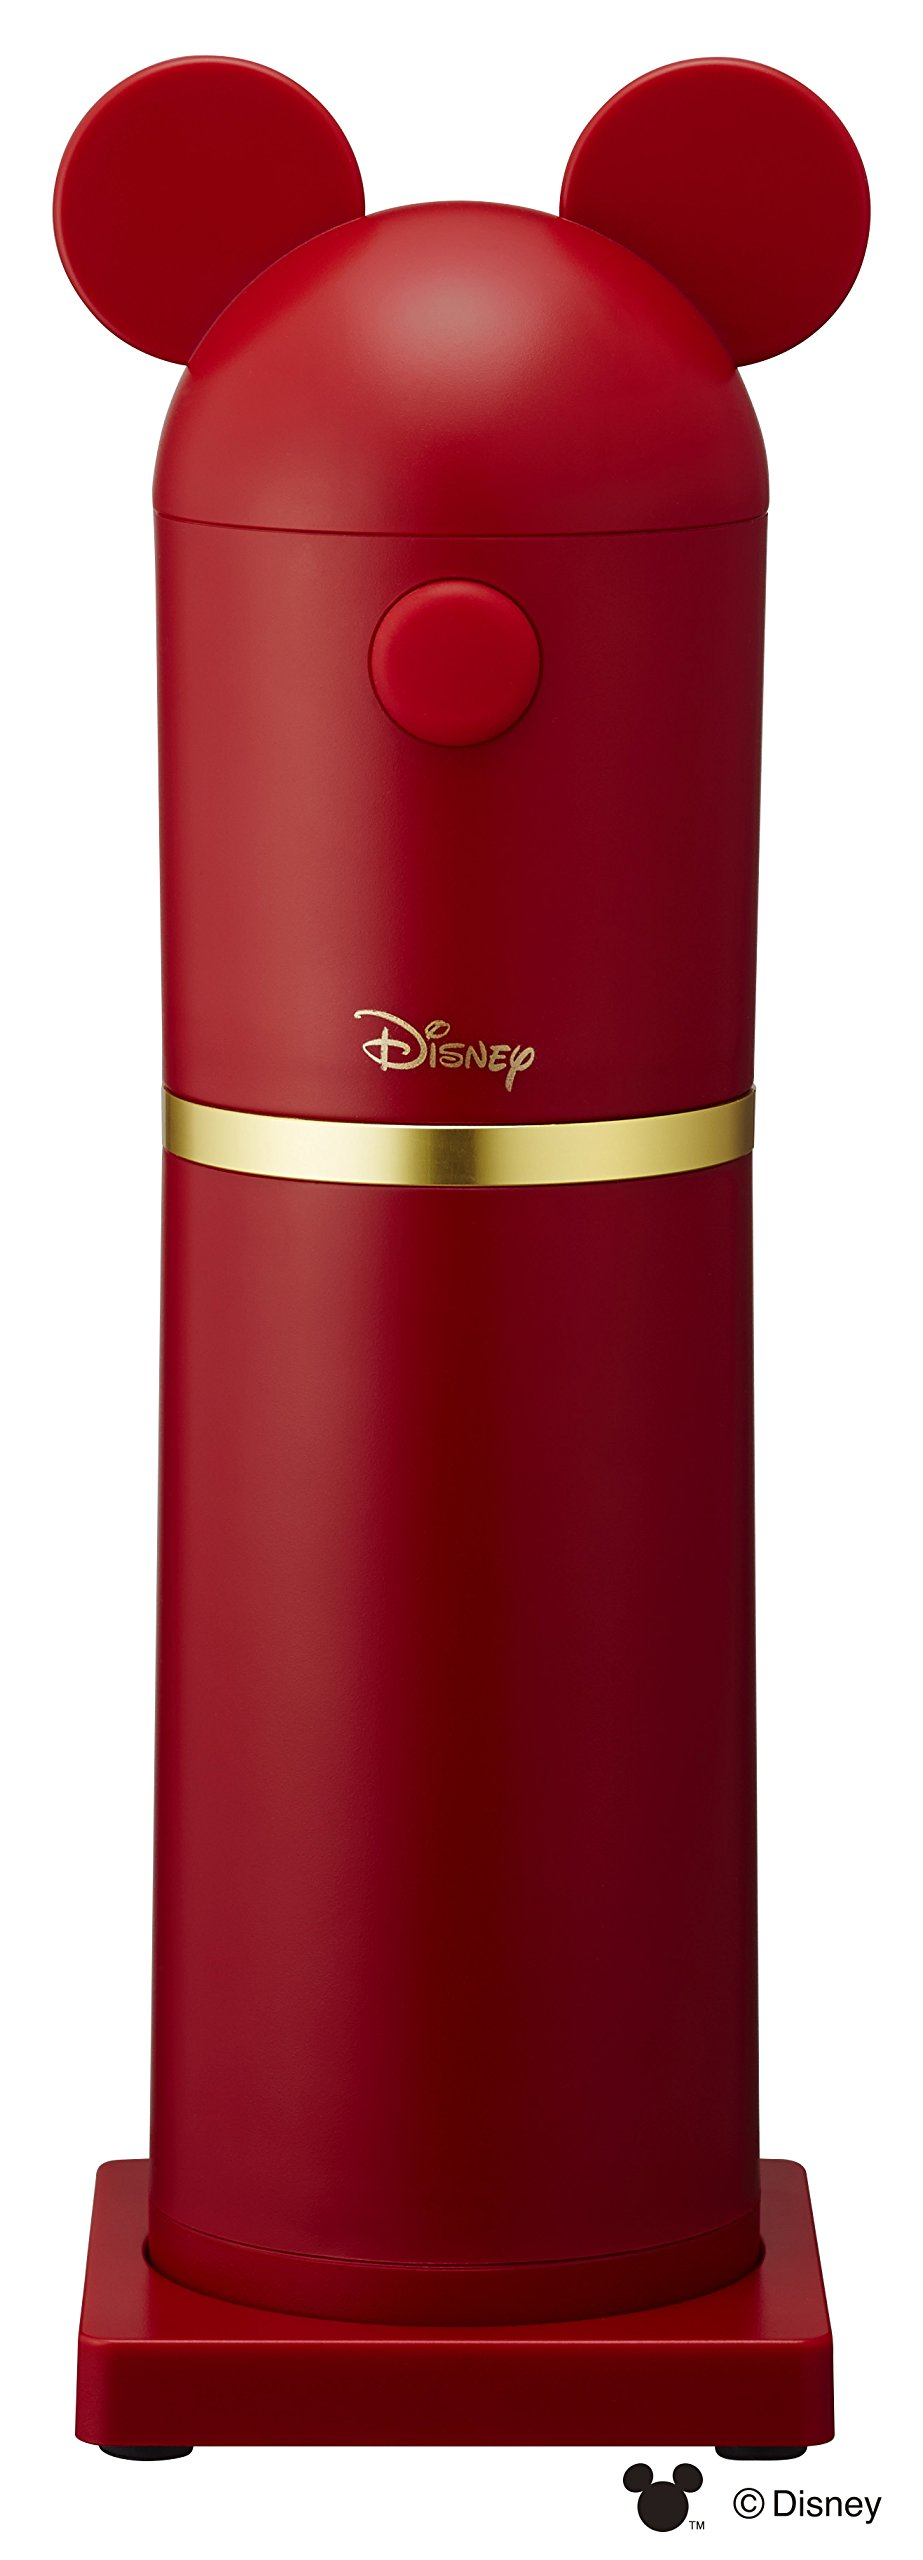 DOSHISHA Disney Series Shaved ice machine DHISD-17RD (Red)【Japan Domestic genuine products】